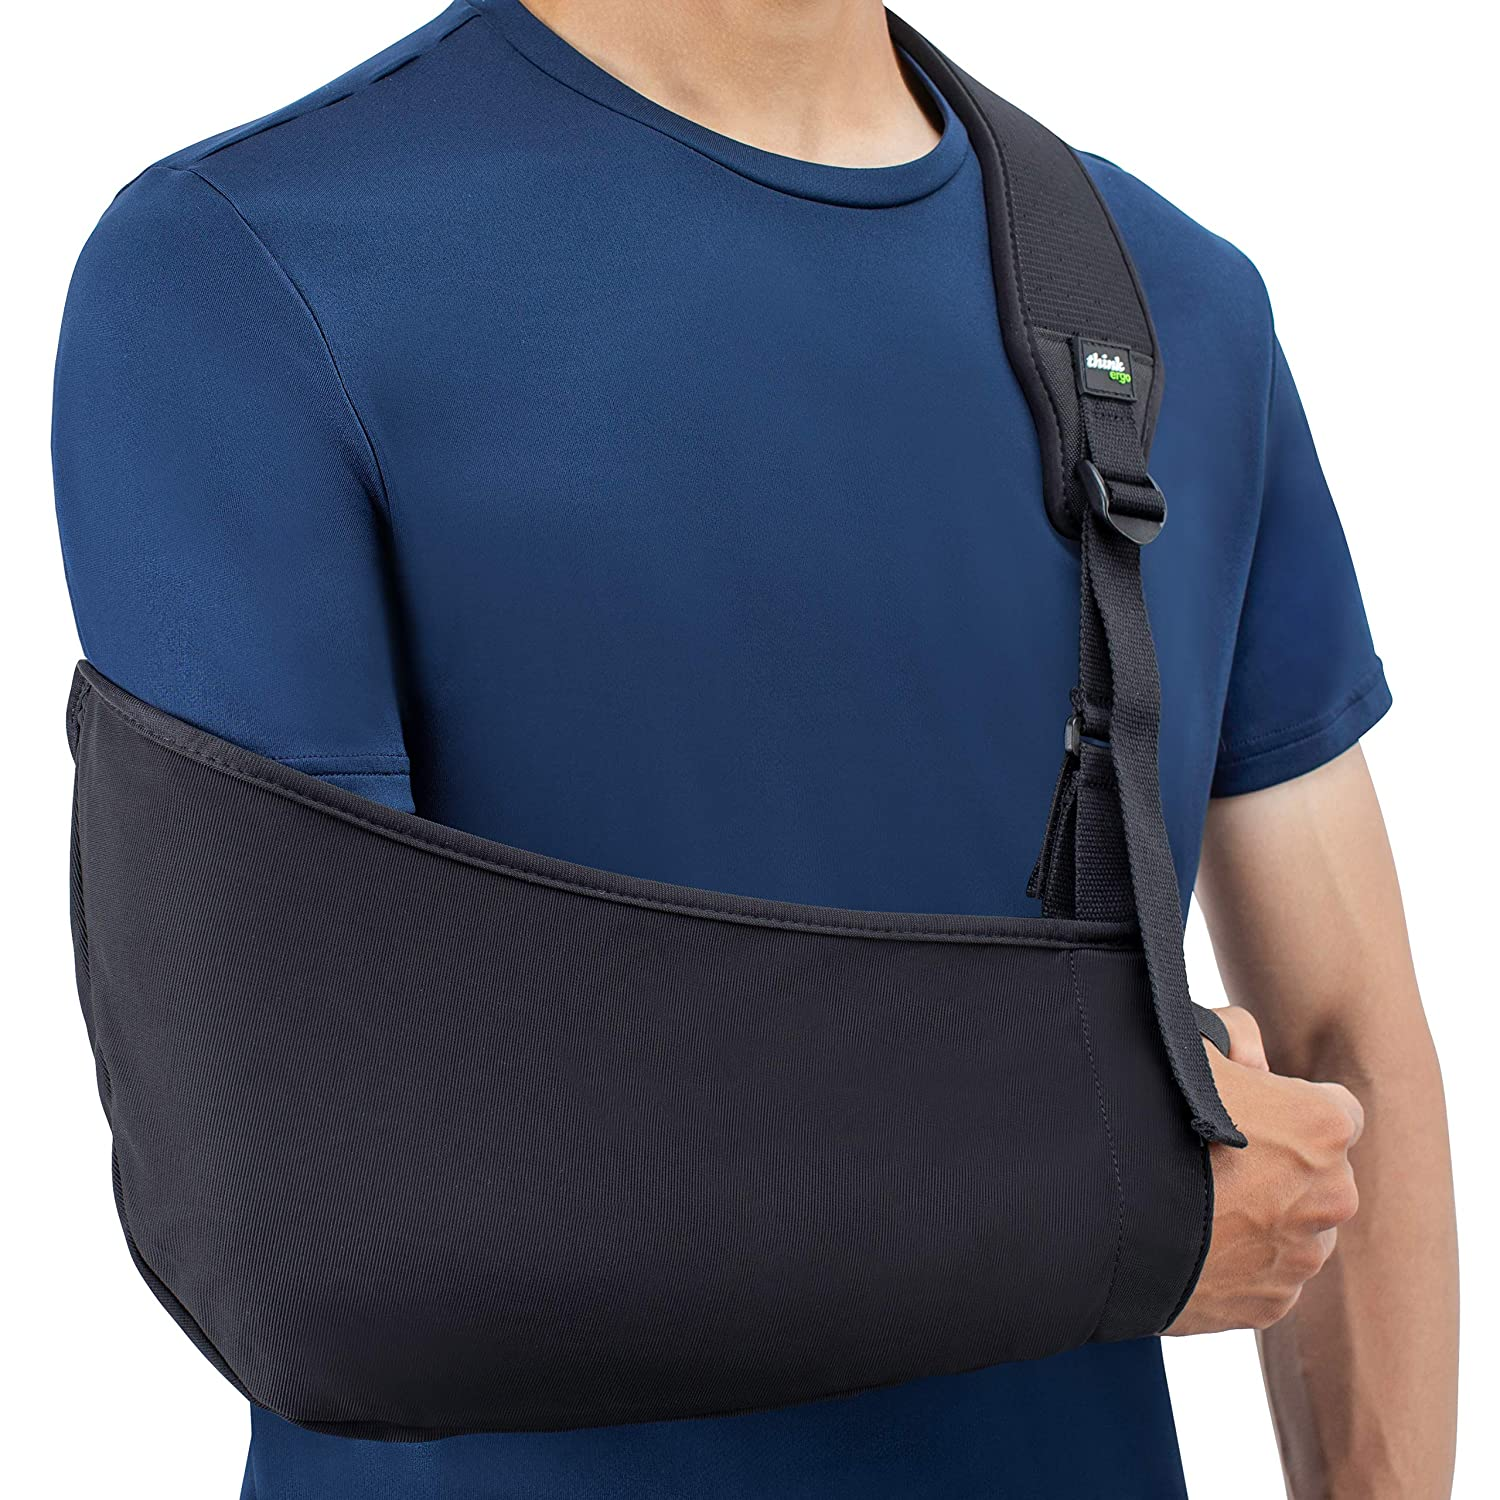 Think Ergo Arm Sling Air Breathable Recommendation Ergonomicall All stores are sold Lightweight -